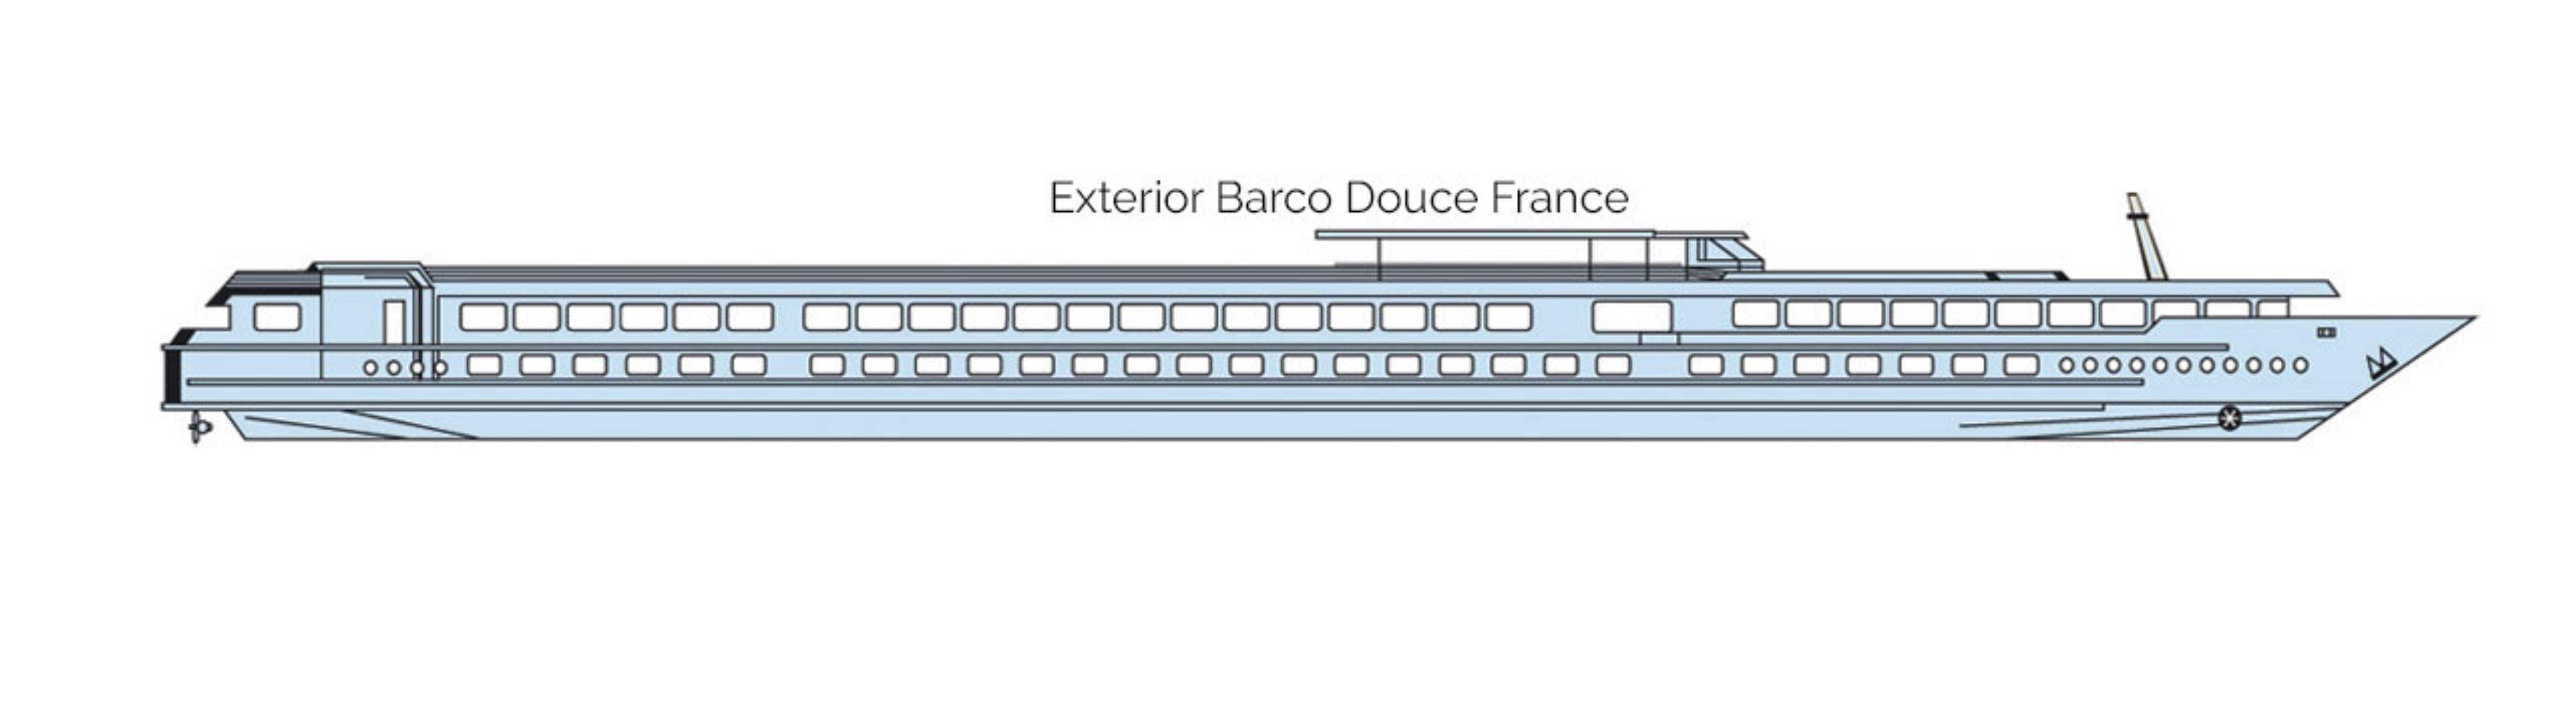 MS Douce France, Exterior del Barco